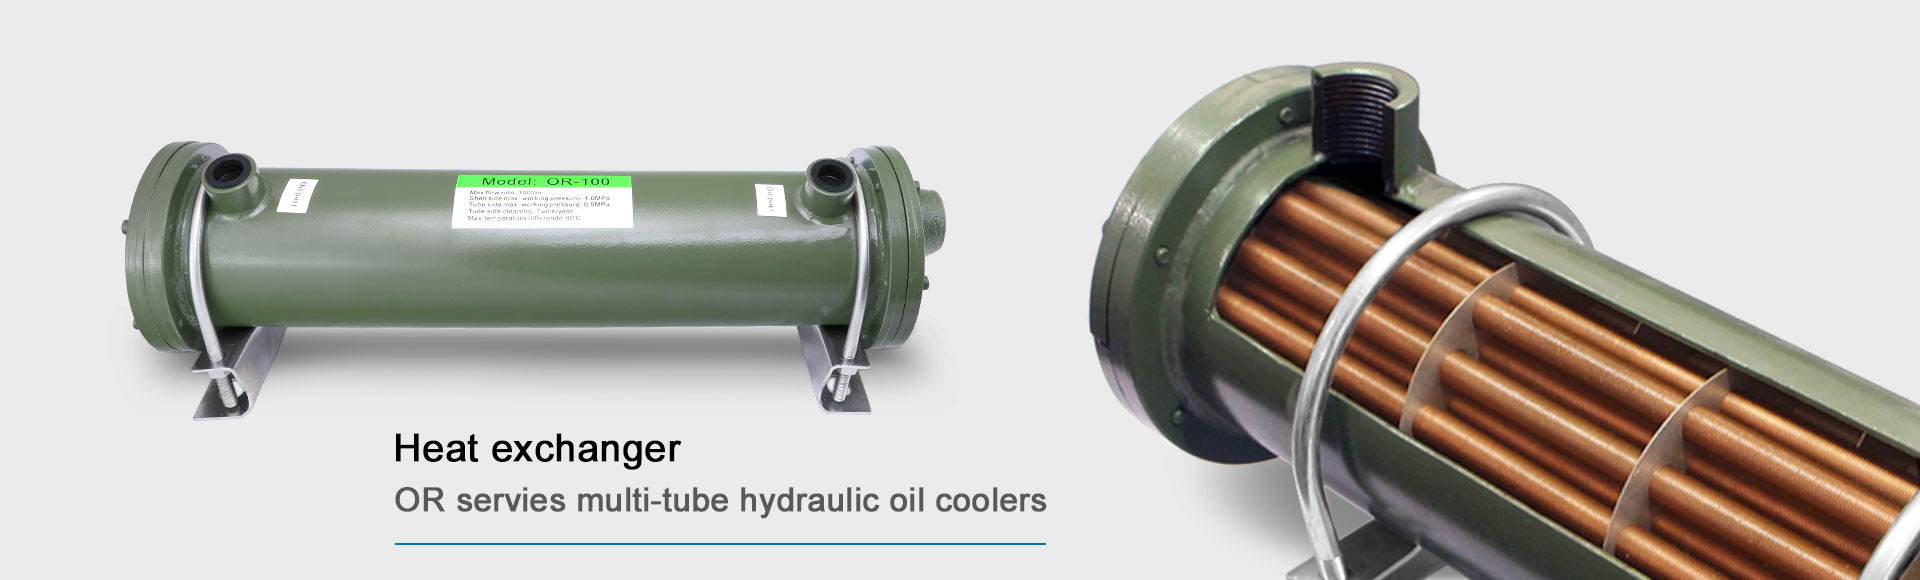 heat-exchanger-or-servies-multi-tube-hydraulic-oil-coolers